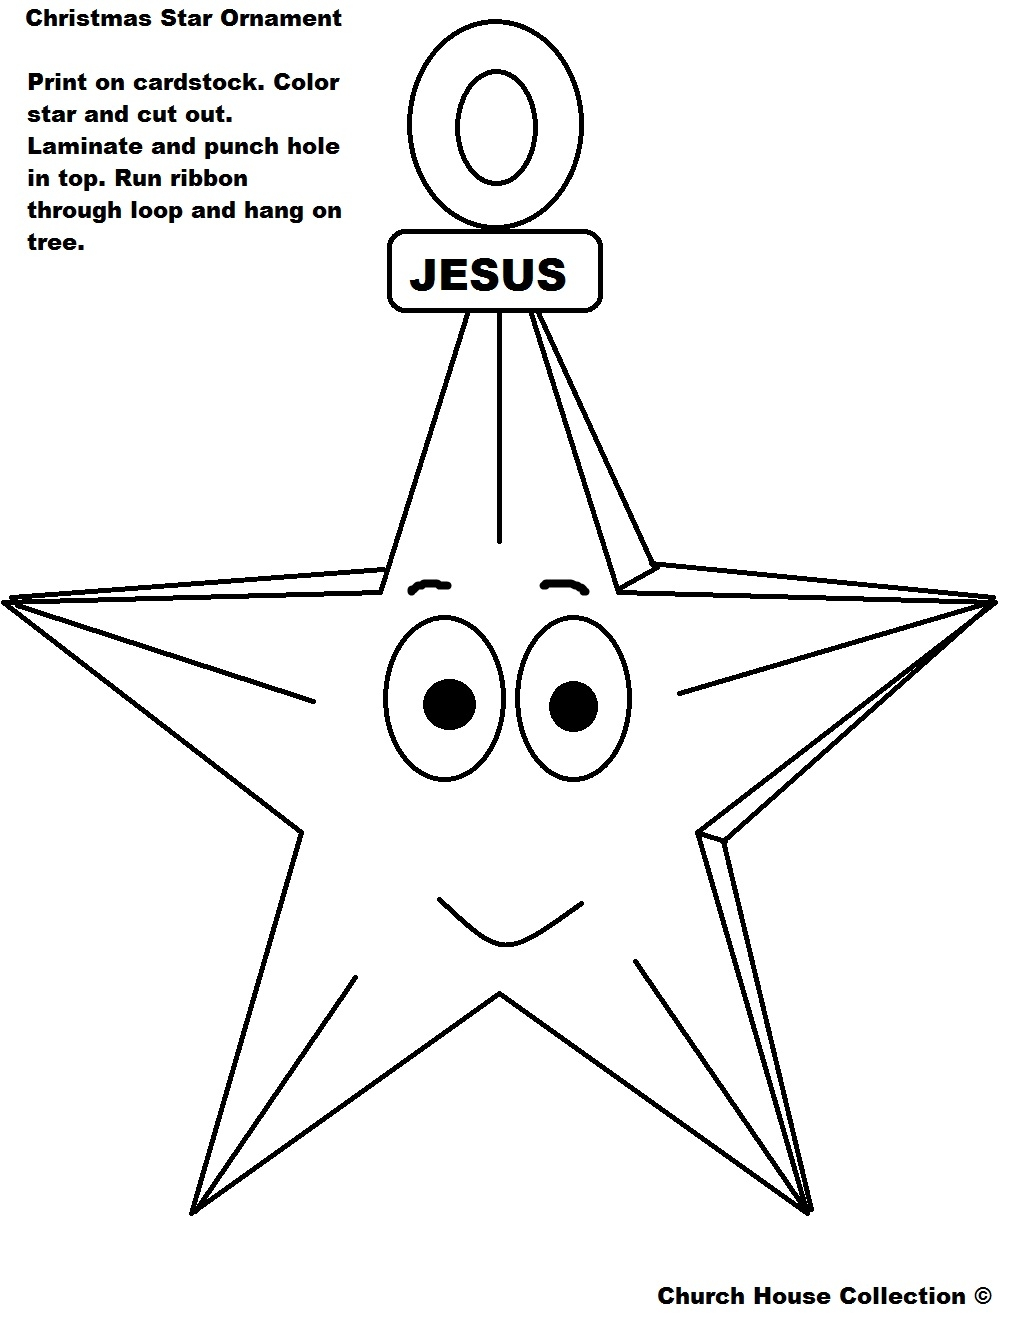 house coloring pages - christmas jesus star ornament cutout